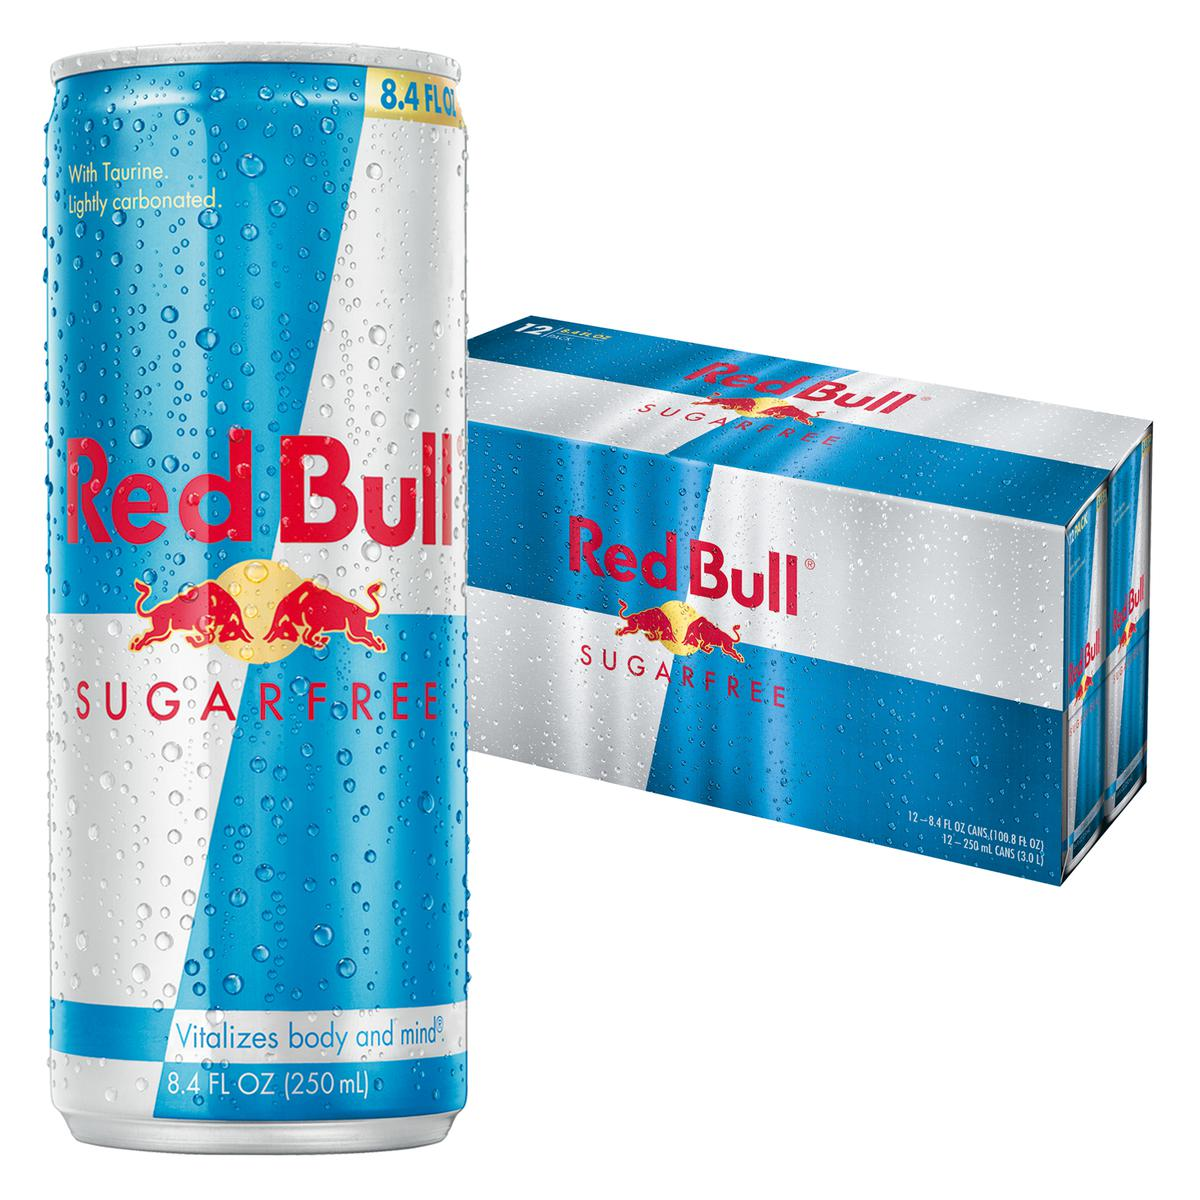 Red Bull Sugarfree Energy Drink, 8.4 Fl Oz, 12 Count